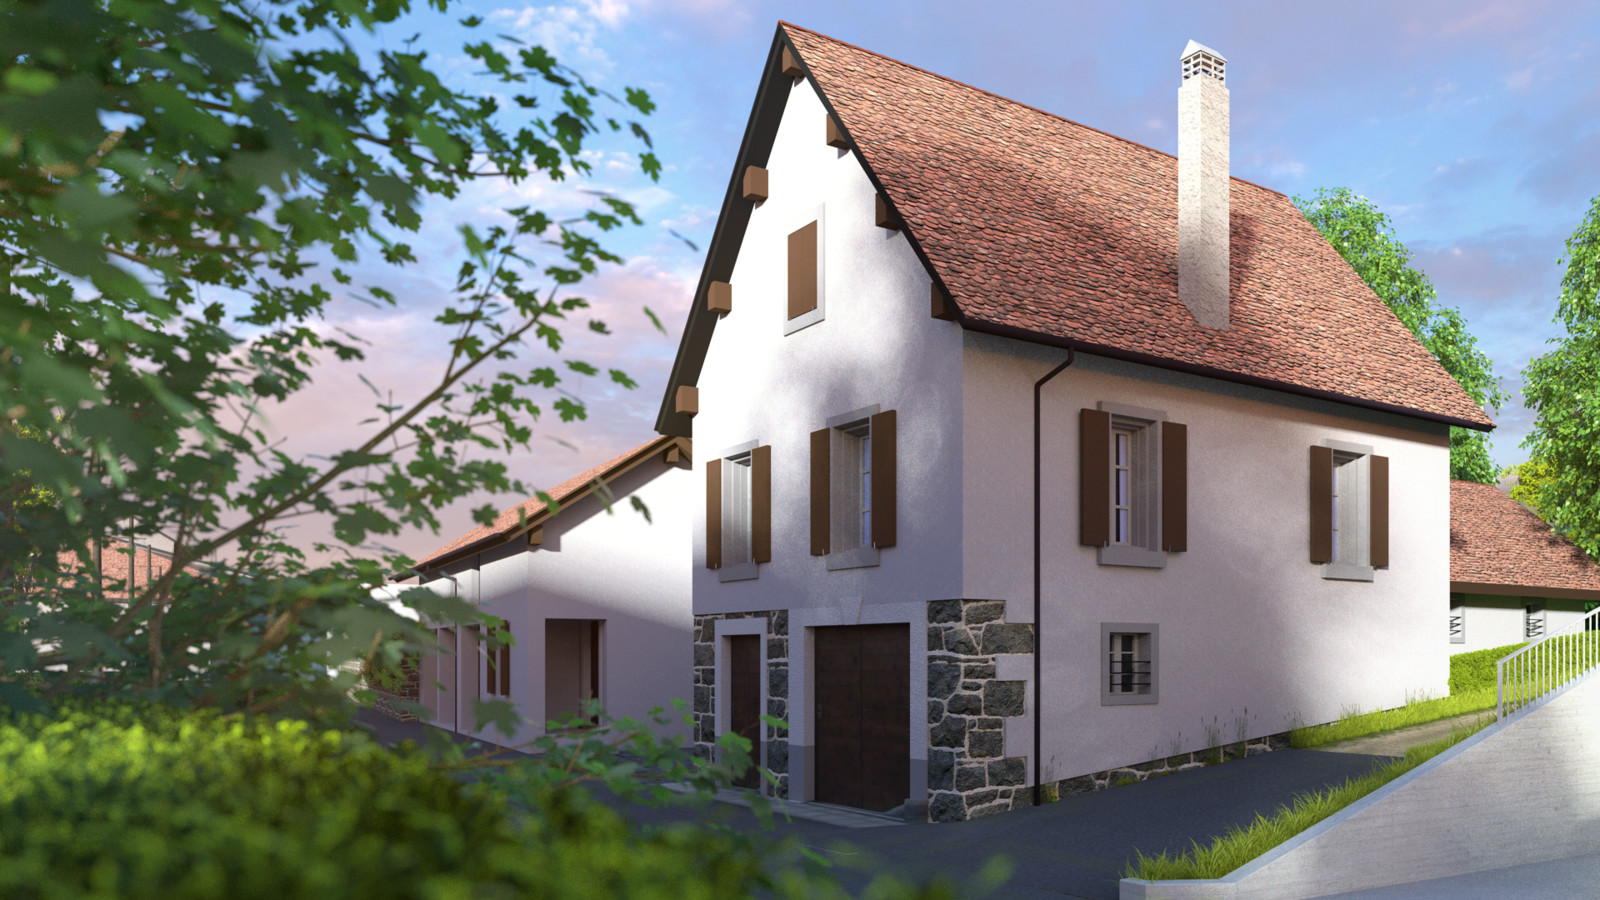 SketchUp + Thea Render  Little Swiss House 01a WIP test 01 Vullierens complete 02 SUv2016-Scene 28b Post combo HD 1920 x 1080 Presto MC